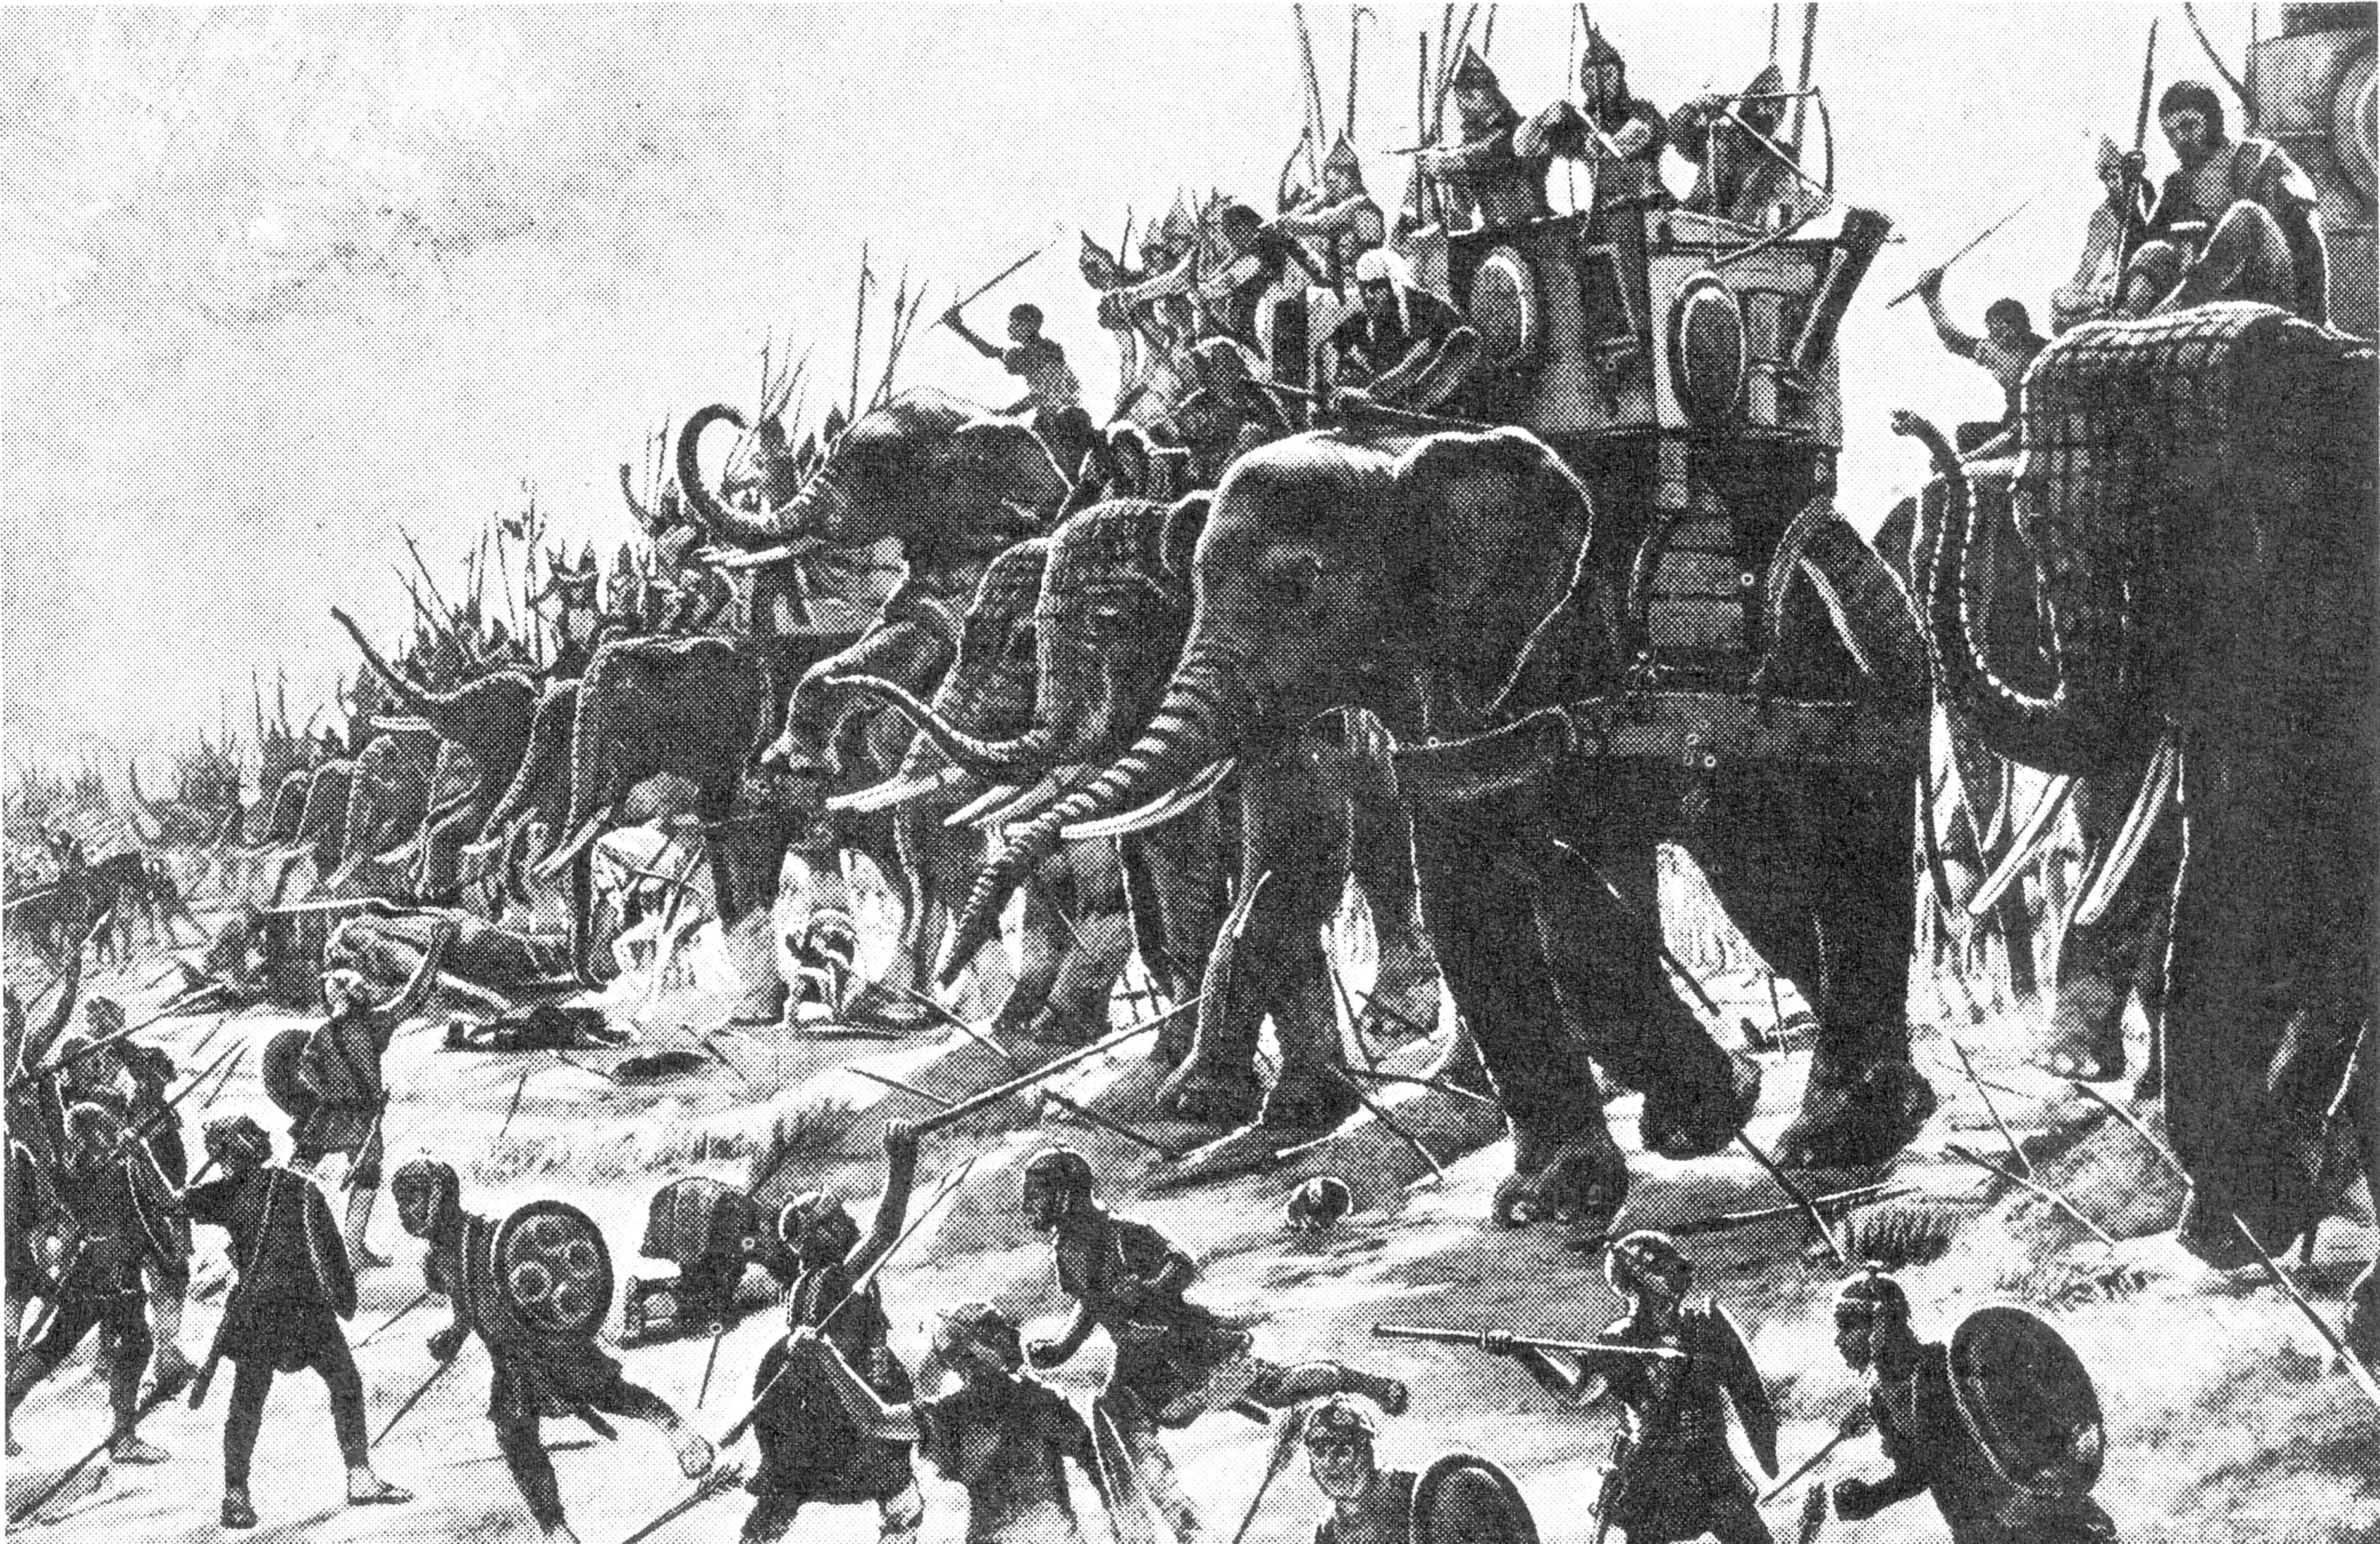 Carthaginian war elephants engage Roman infantry at the Battle of Zama (202 BC).